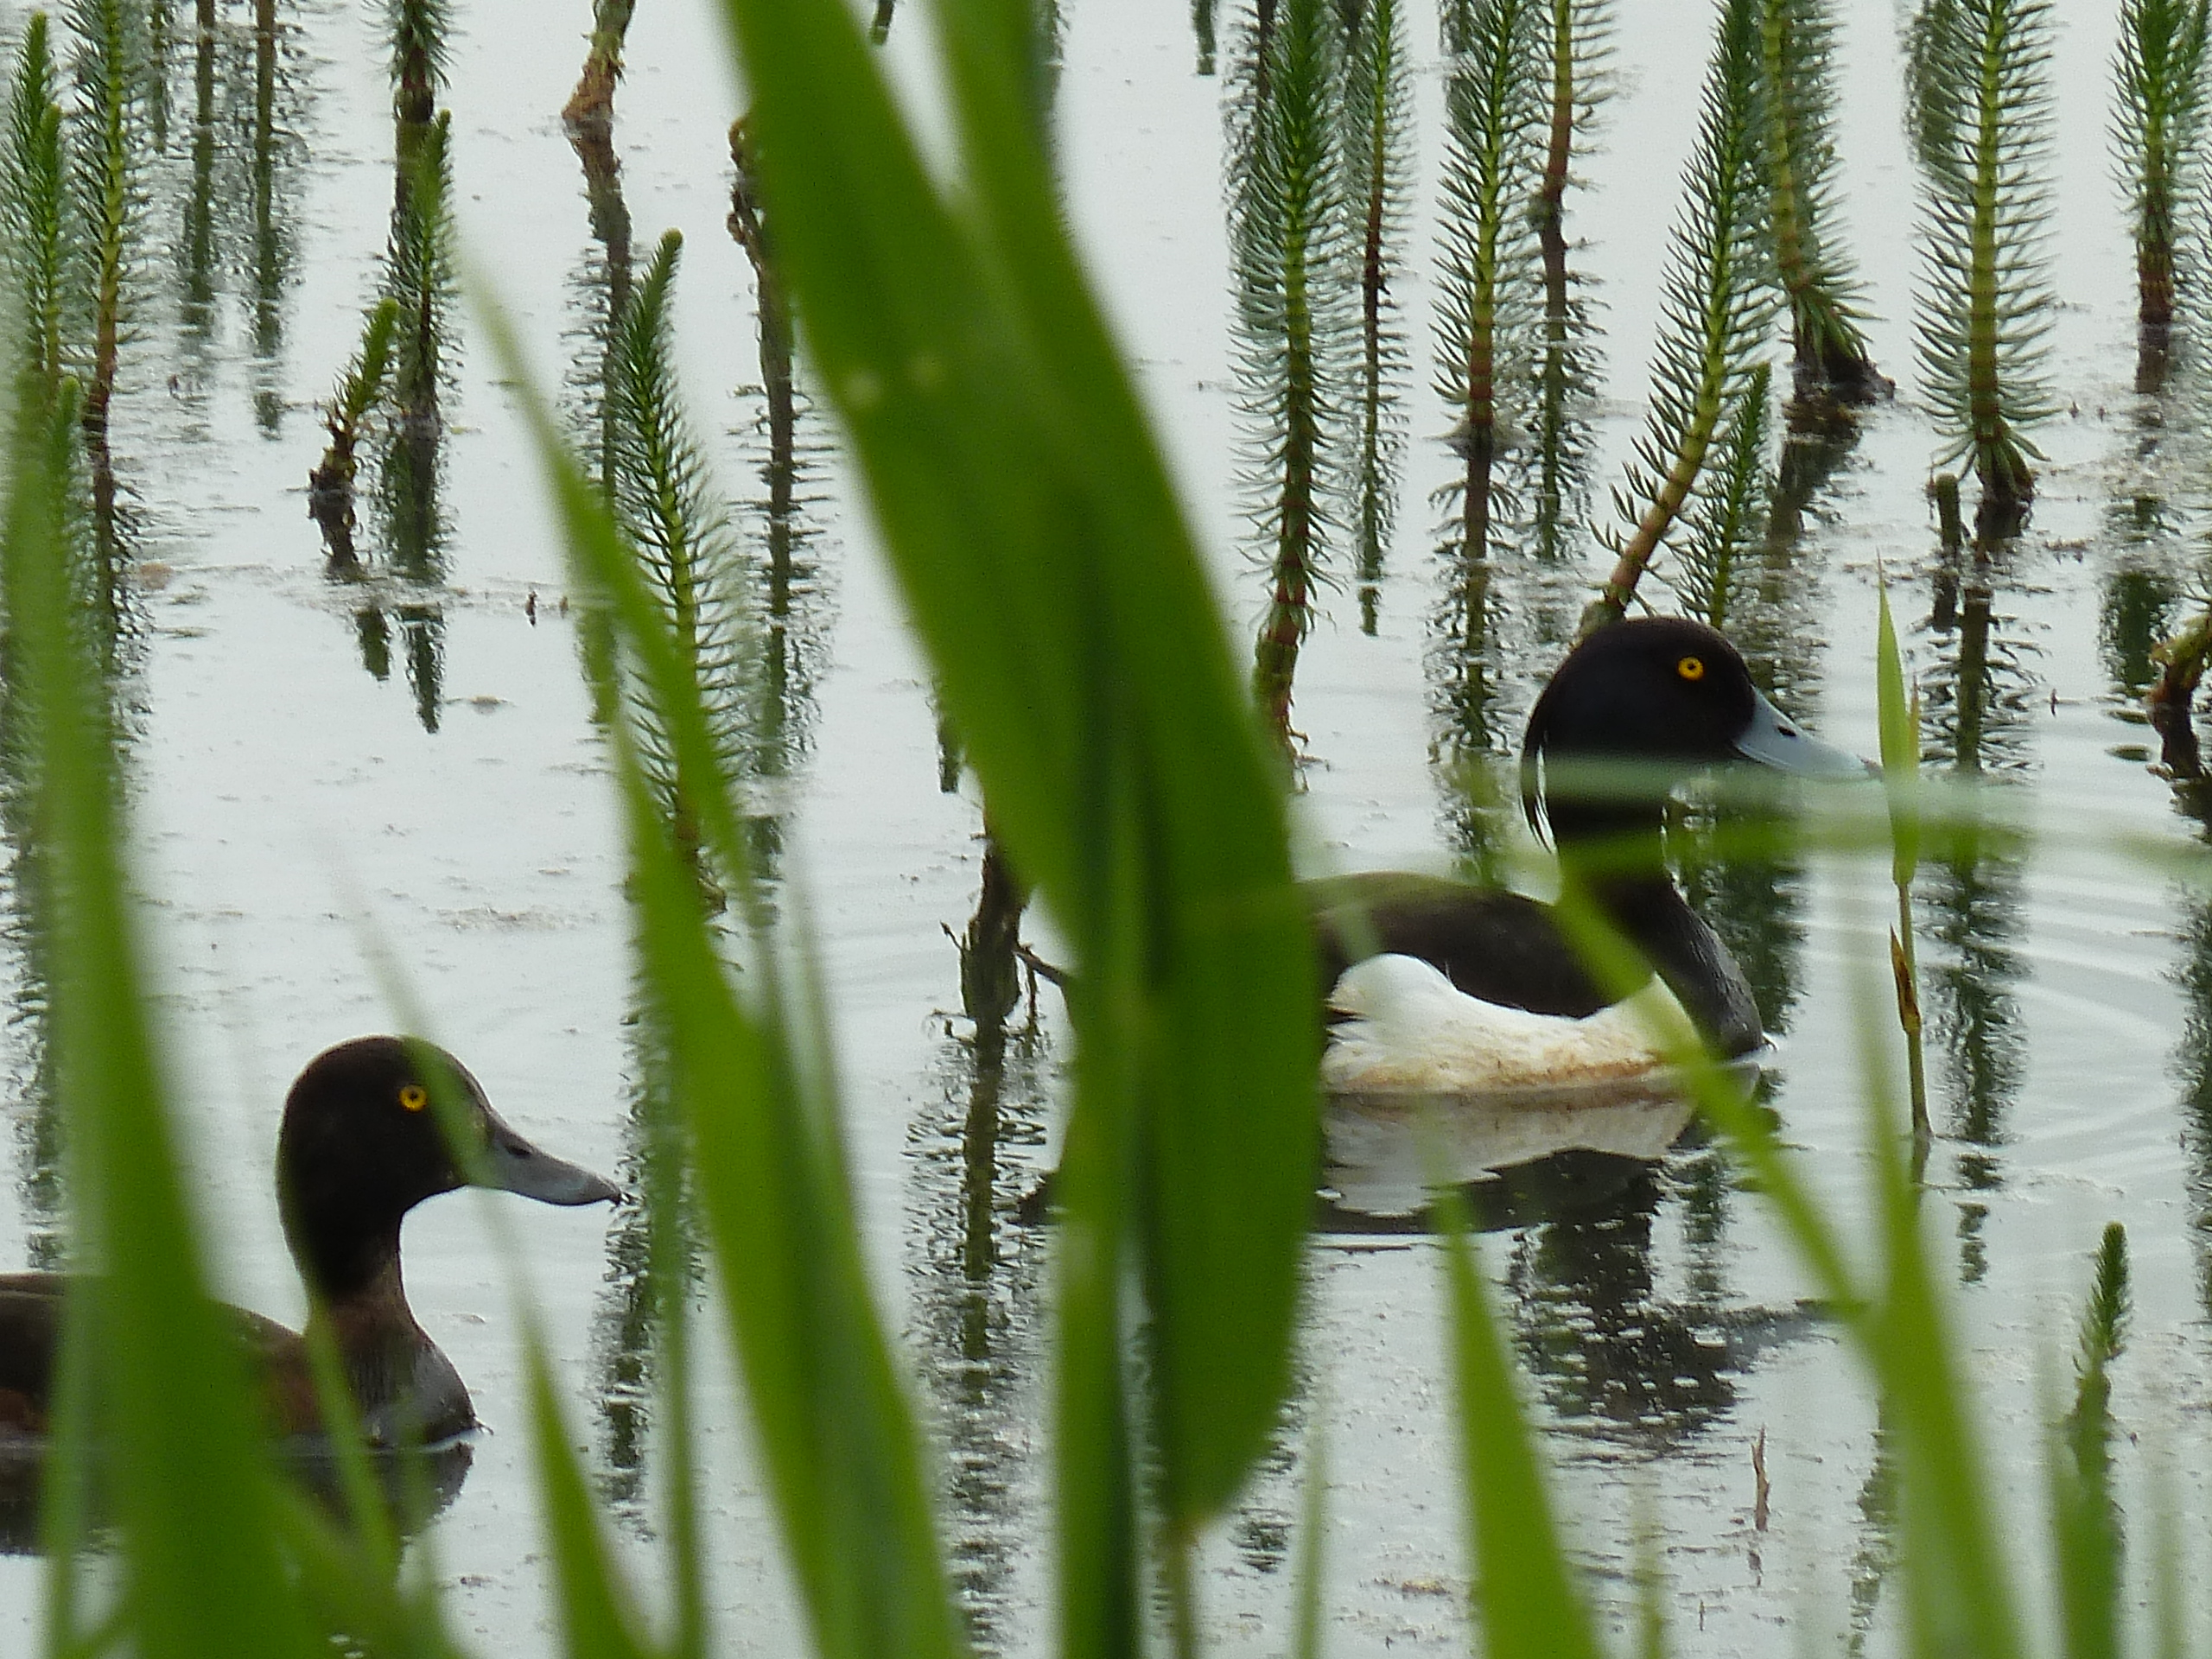 Tufted Duck in the Reeds.